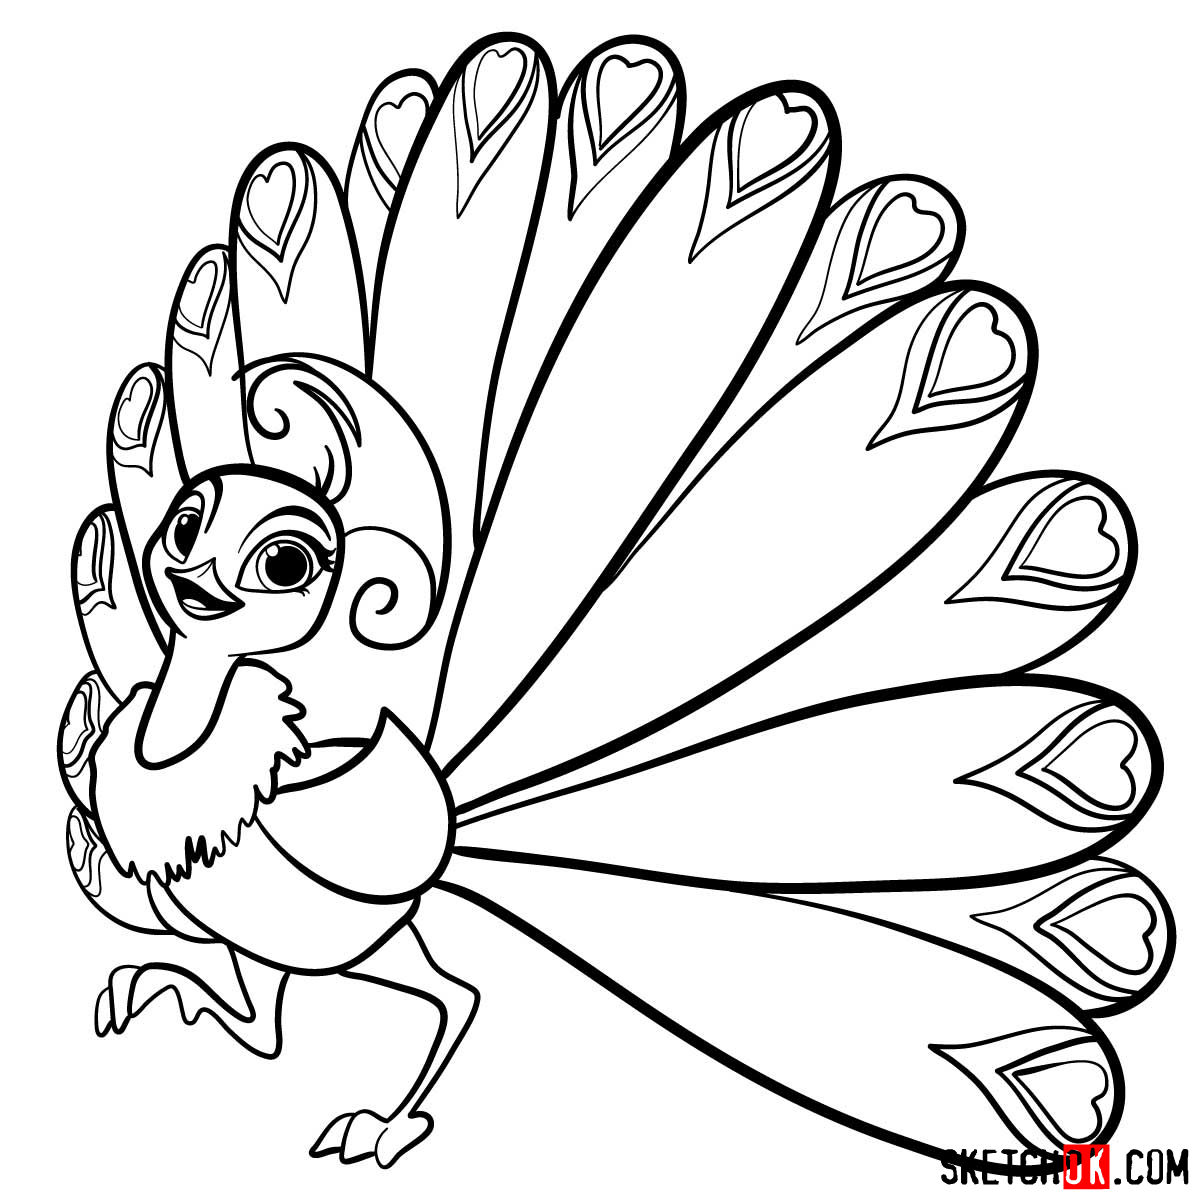 How to draw Roya the peacock from Shimmer and Shine